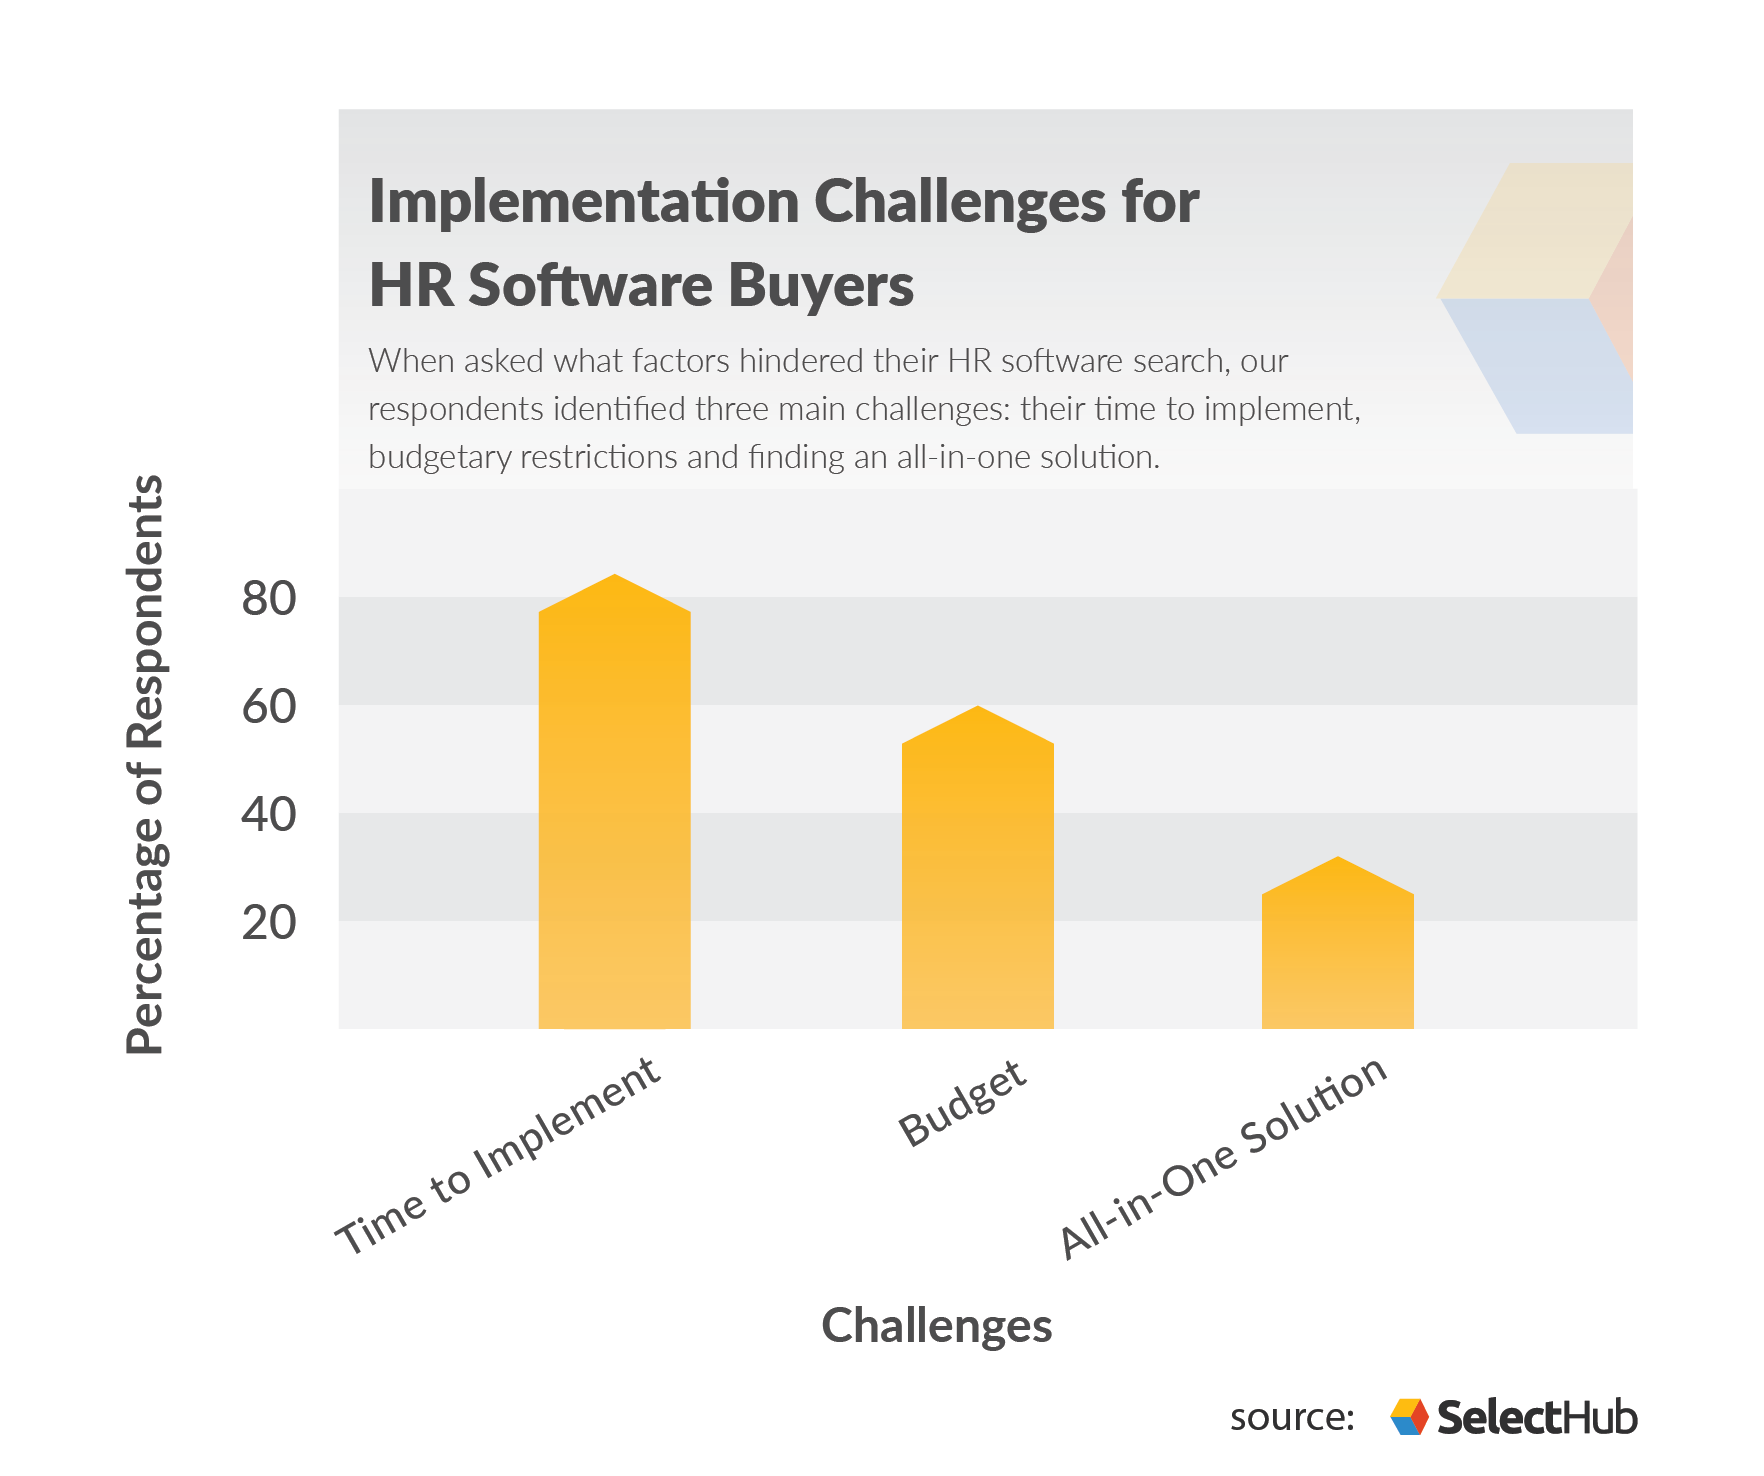 HR Buying Trends Implementation Challenges